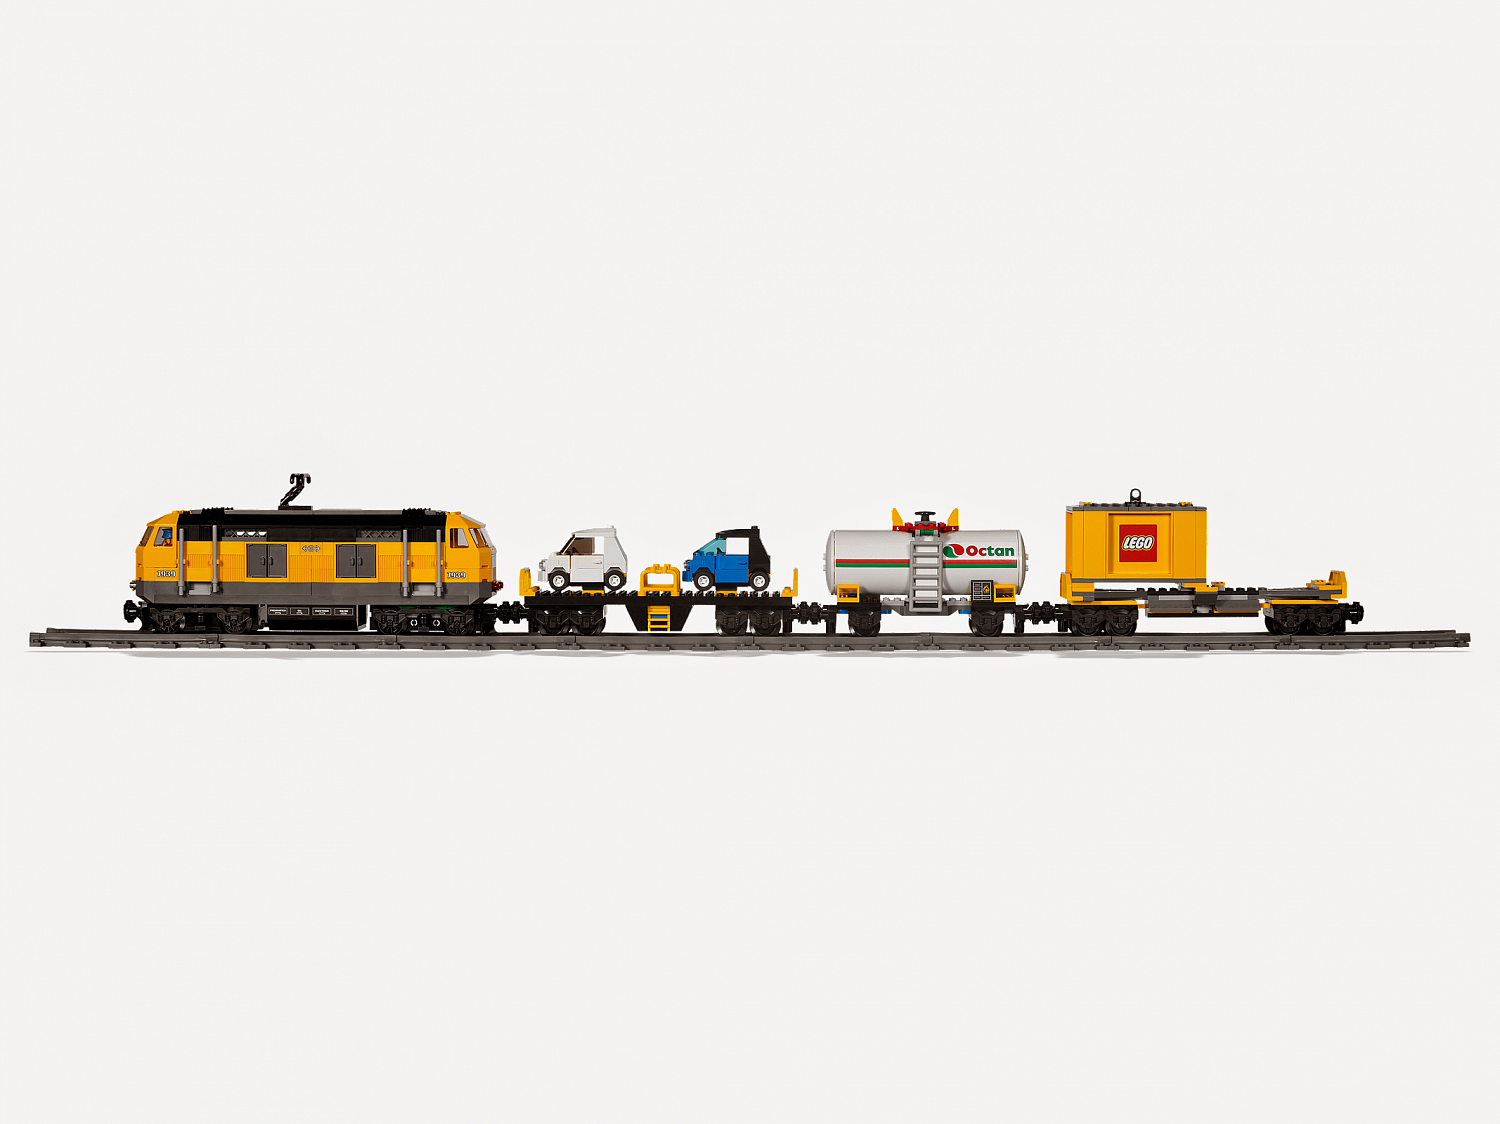 Lego City 7939 Cargo Train Товарный поезд